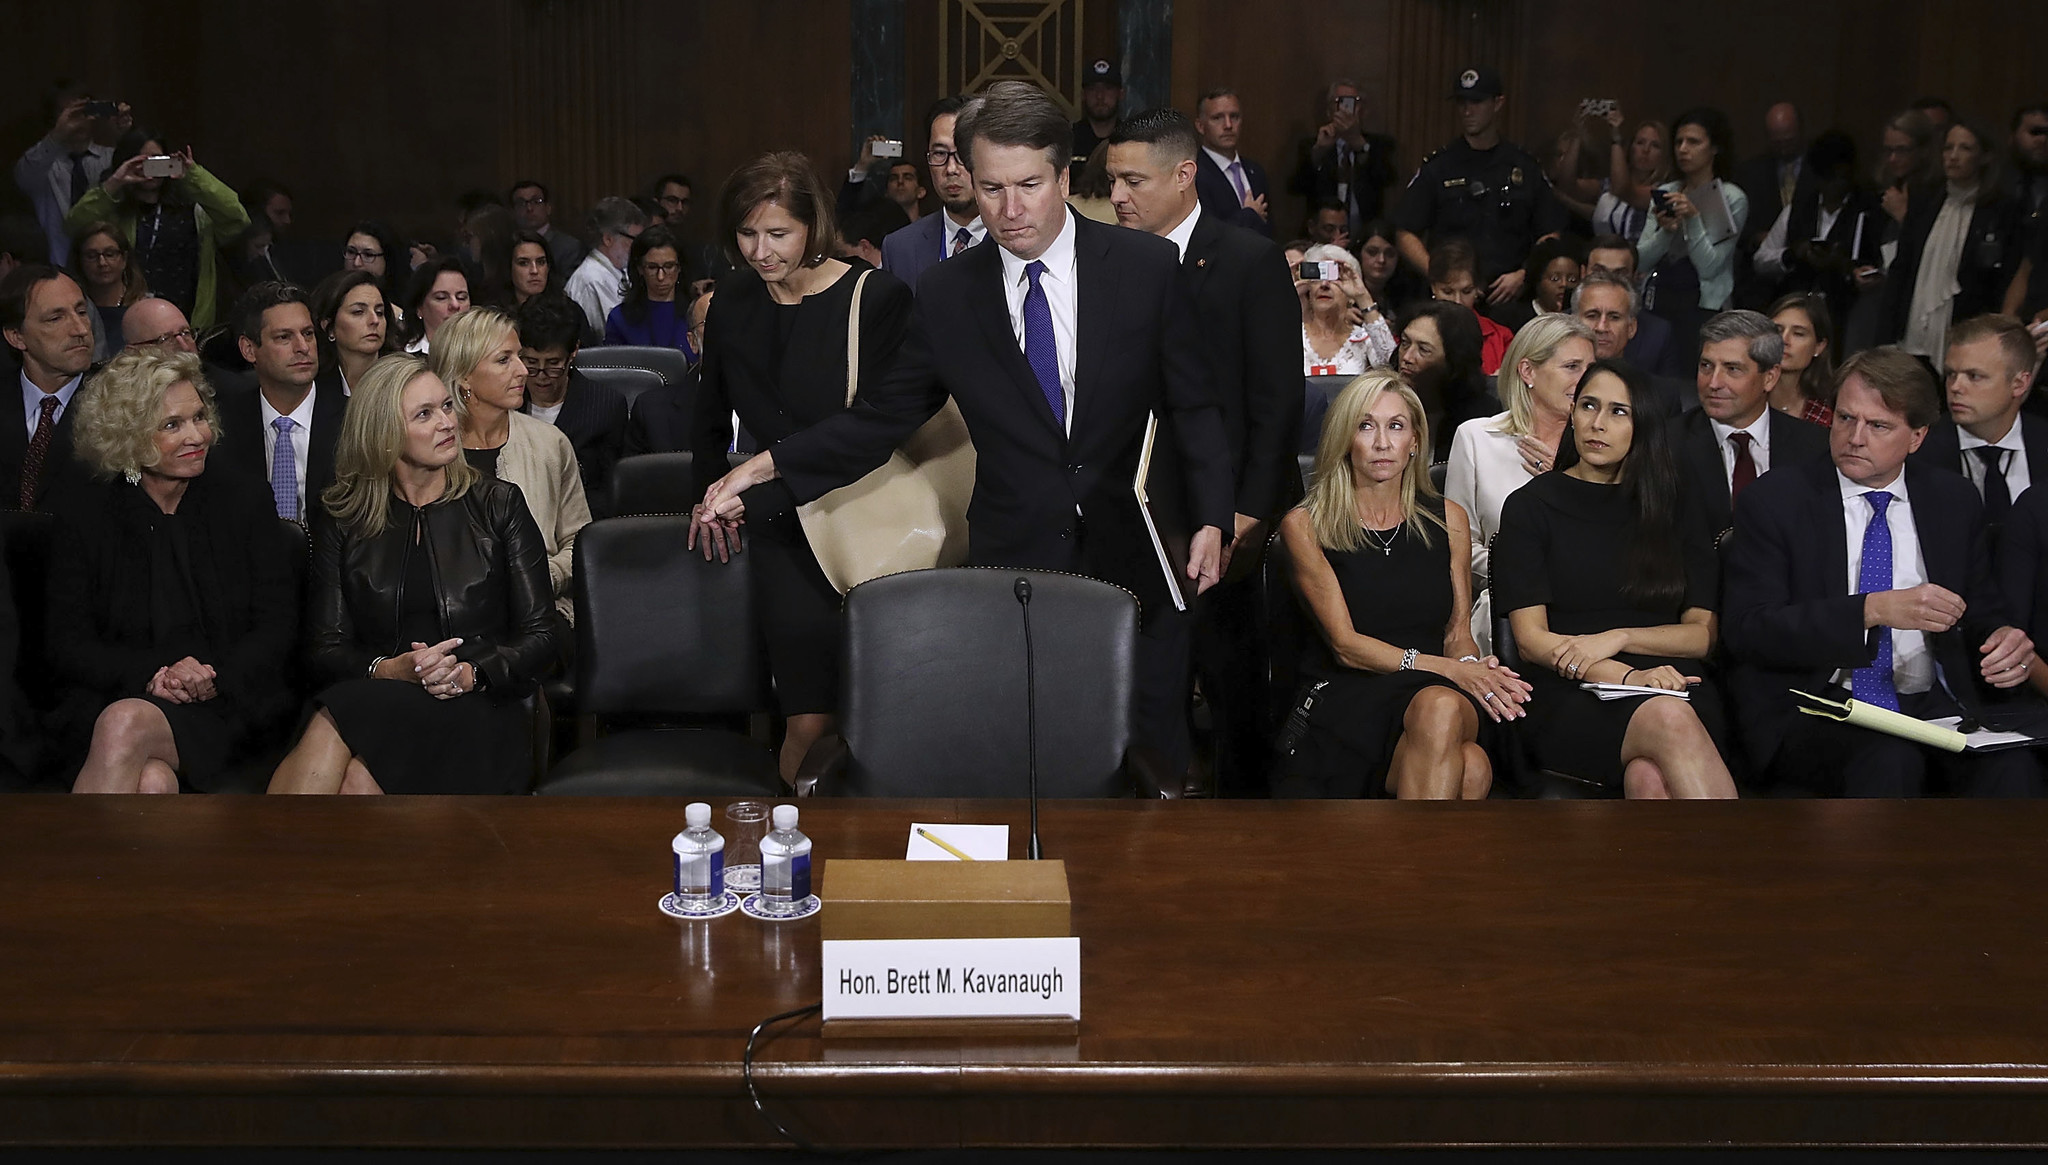 Watch Live Judge Brett Kavanaugh Confirmation Vote Discussed In And Latest News Senate Judiciary Committee Us Orlando Sentinel